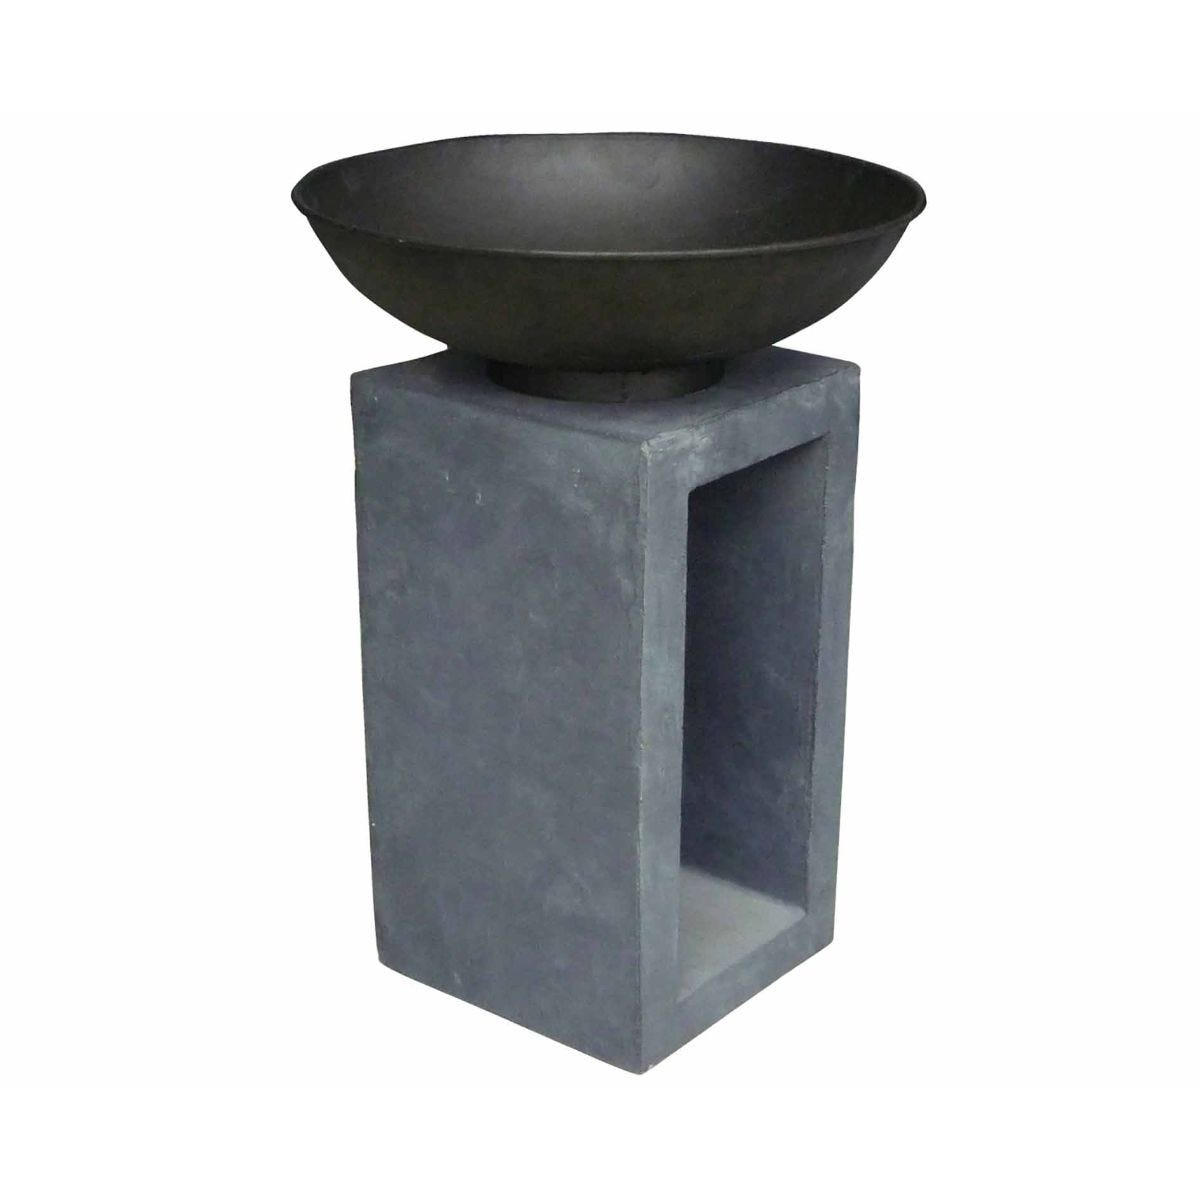 Image of Charles Bentley Medium Metal Fire Bowl with Hollow Console, Charcoal